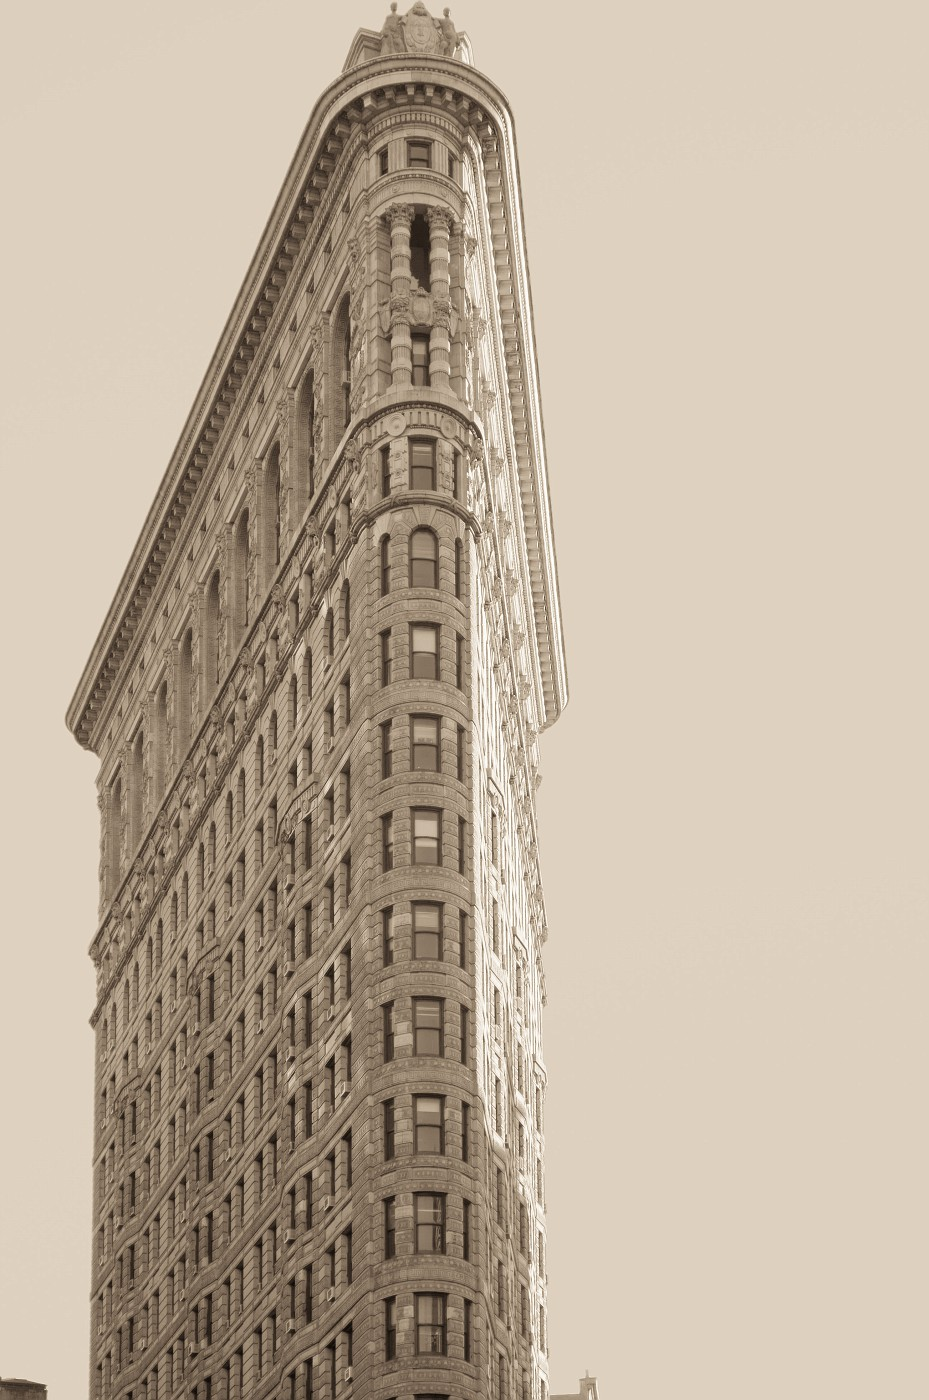 Flatiron Building, New York, NY